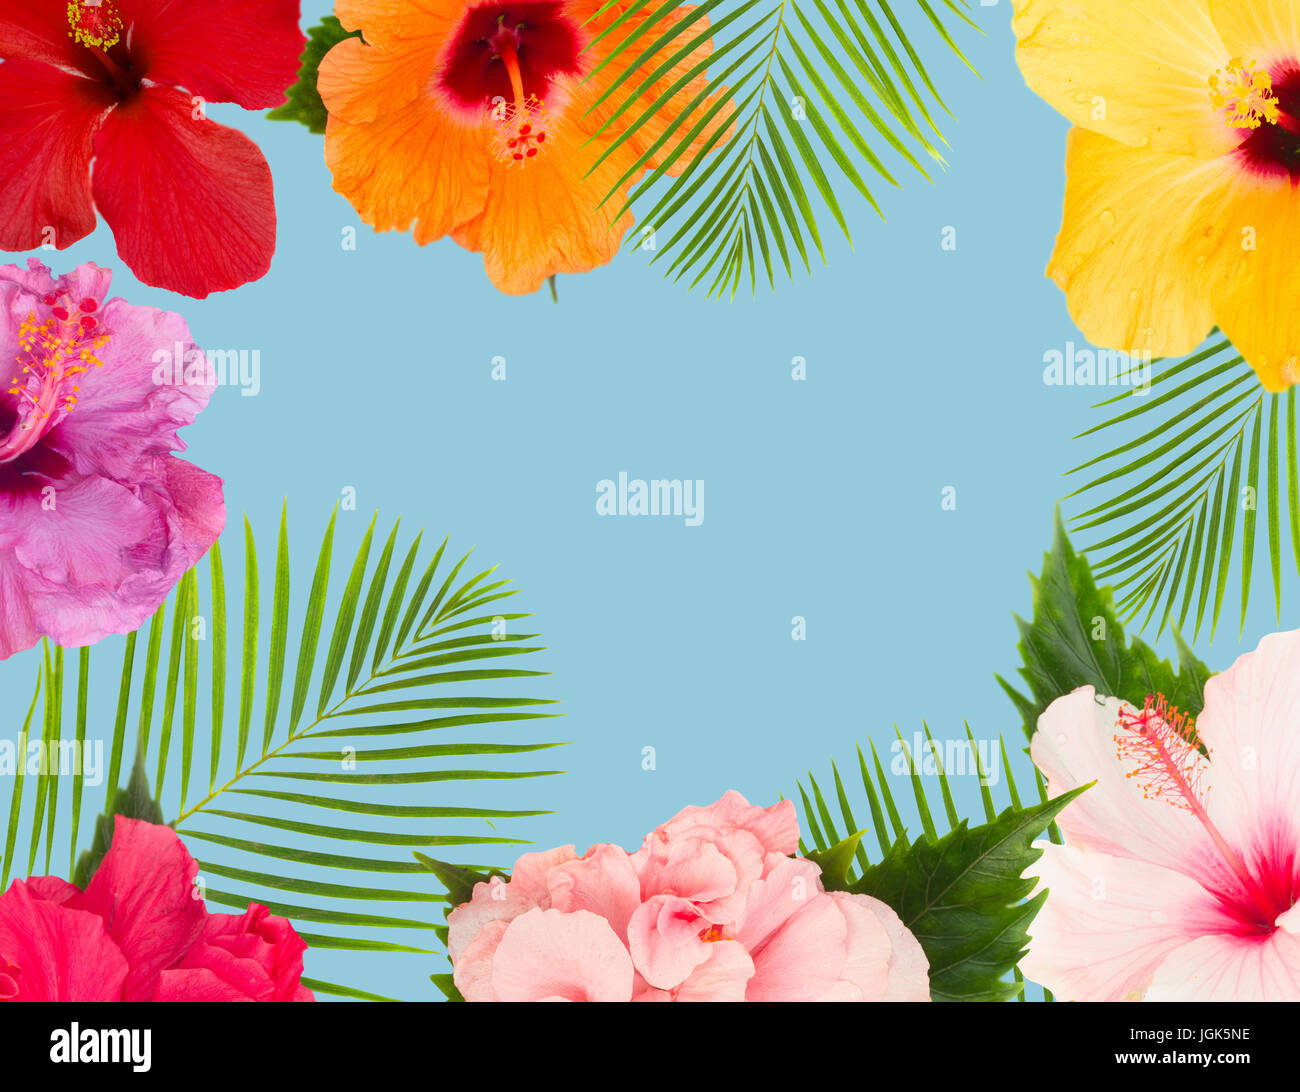 Tropical Fresh Flowers And Leaves Frame Of Fresh Multicilored